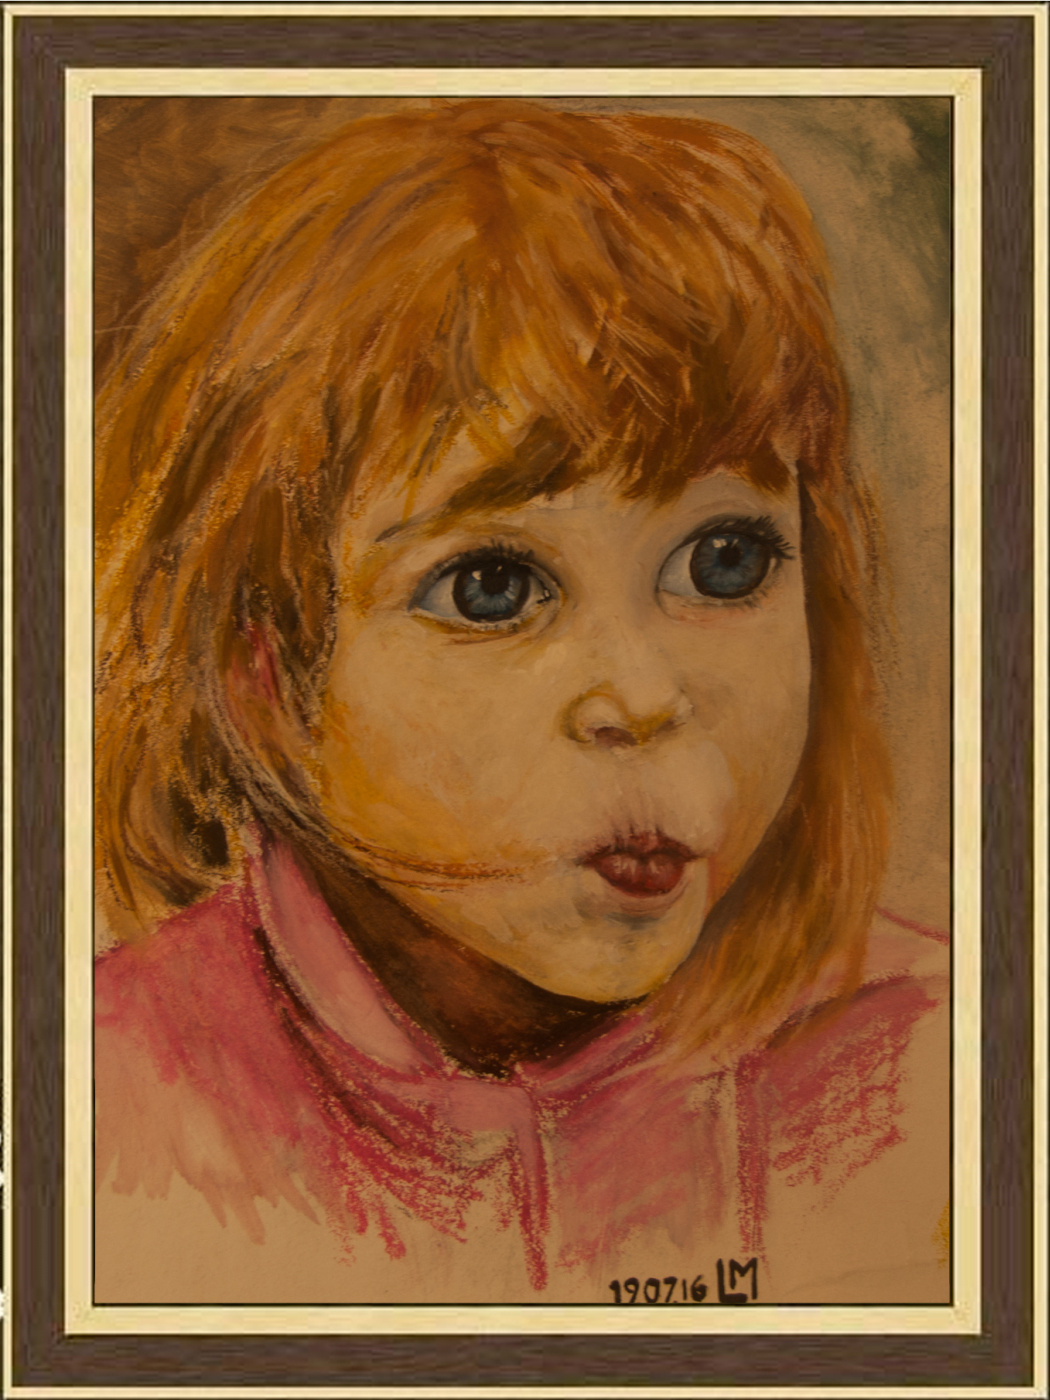 Girl with blue eyes by Lev Mayski: History, Analysis & Facts